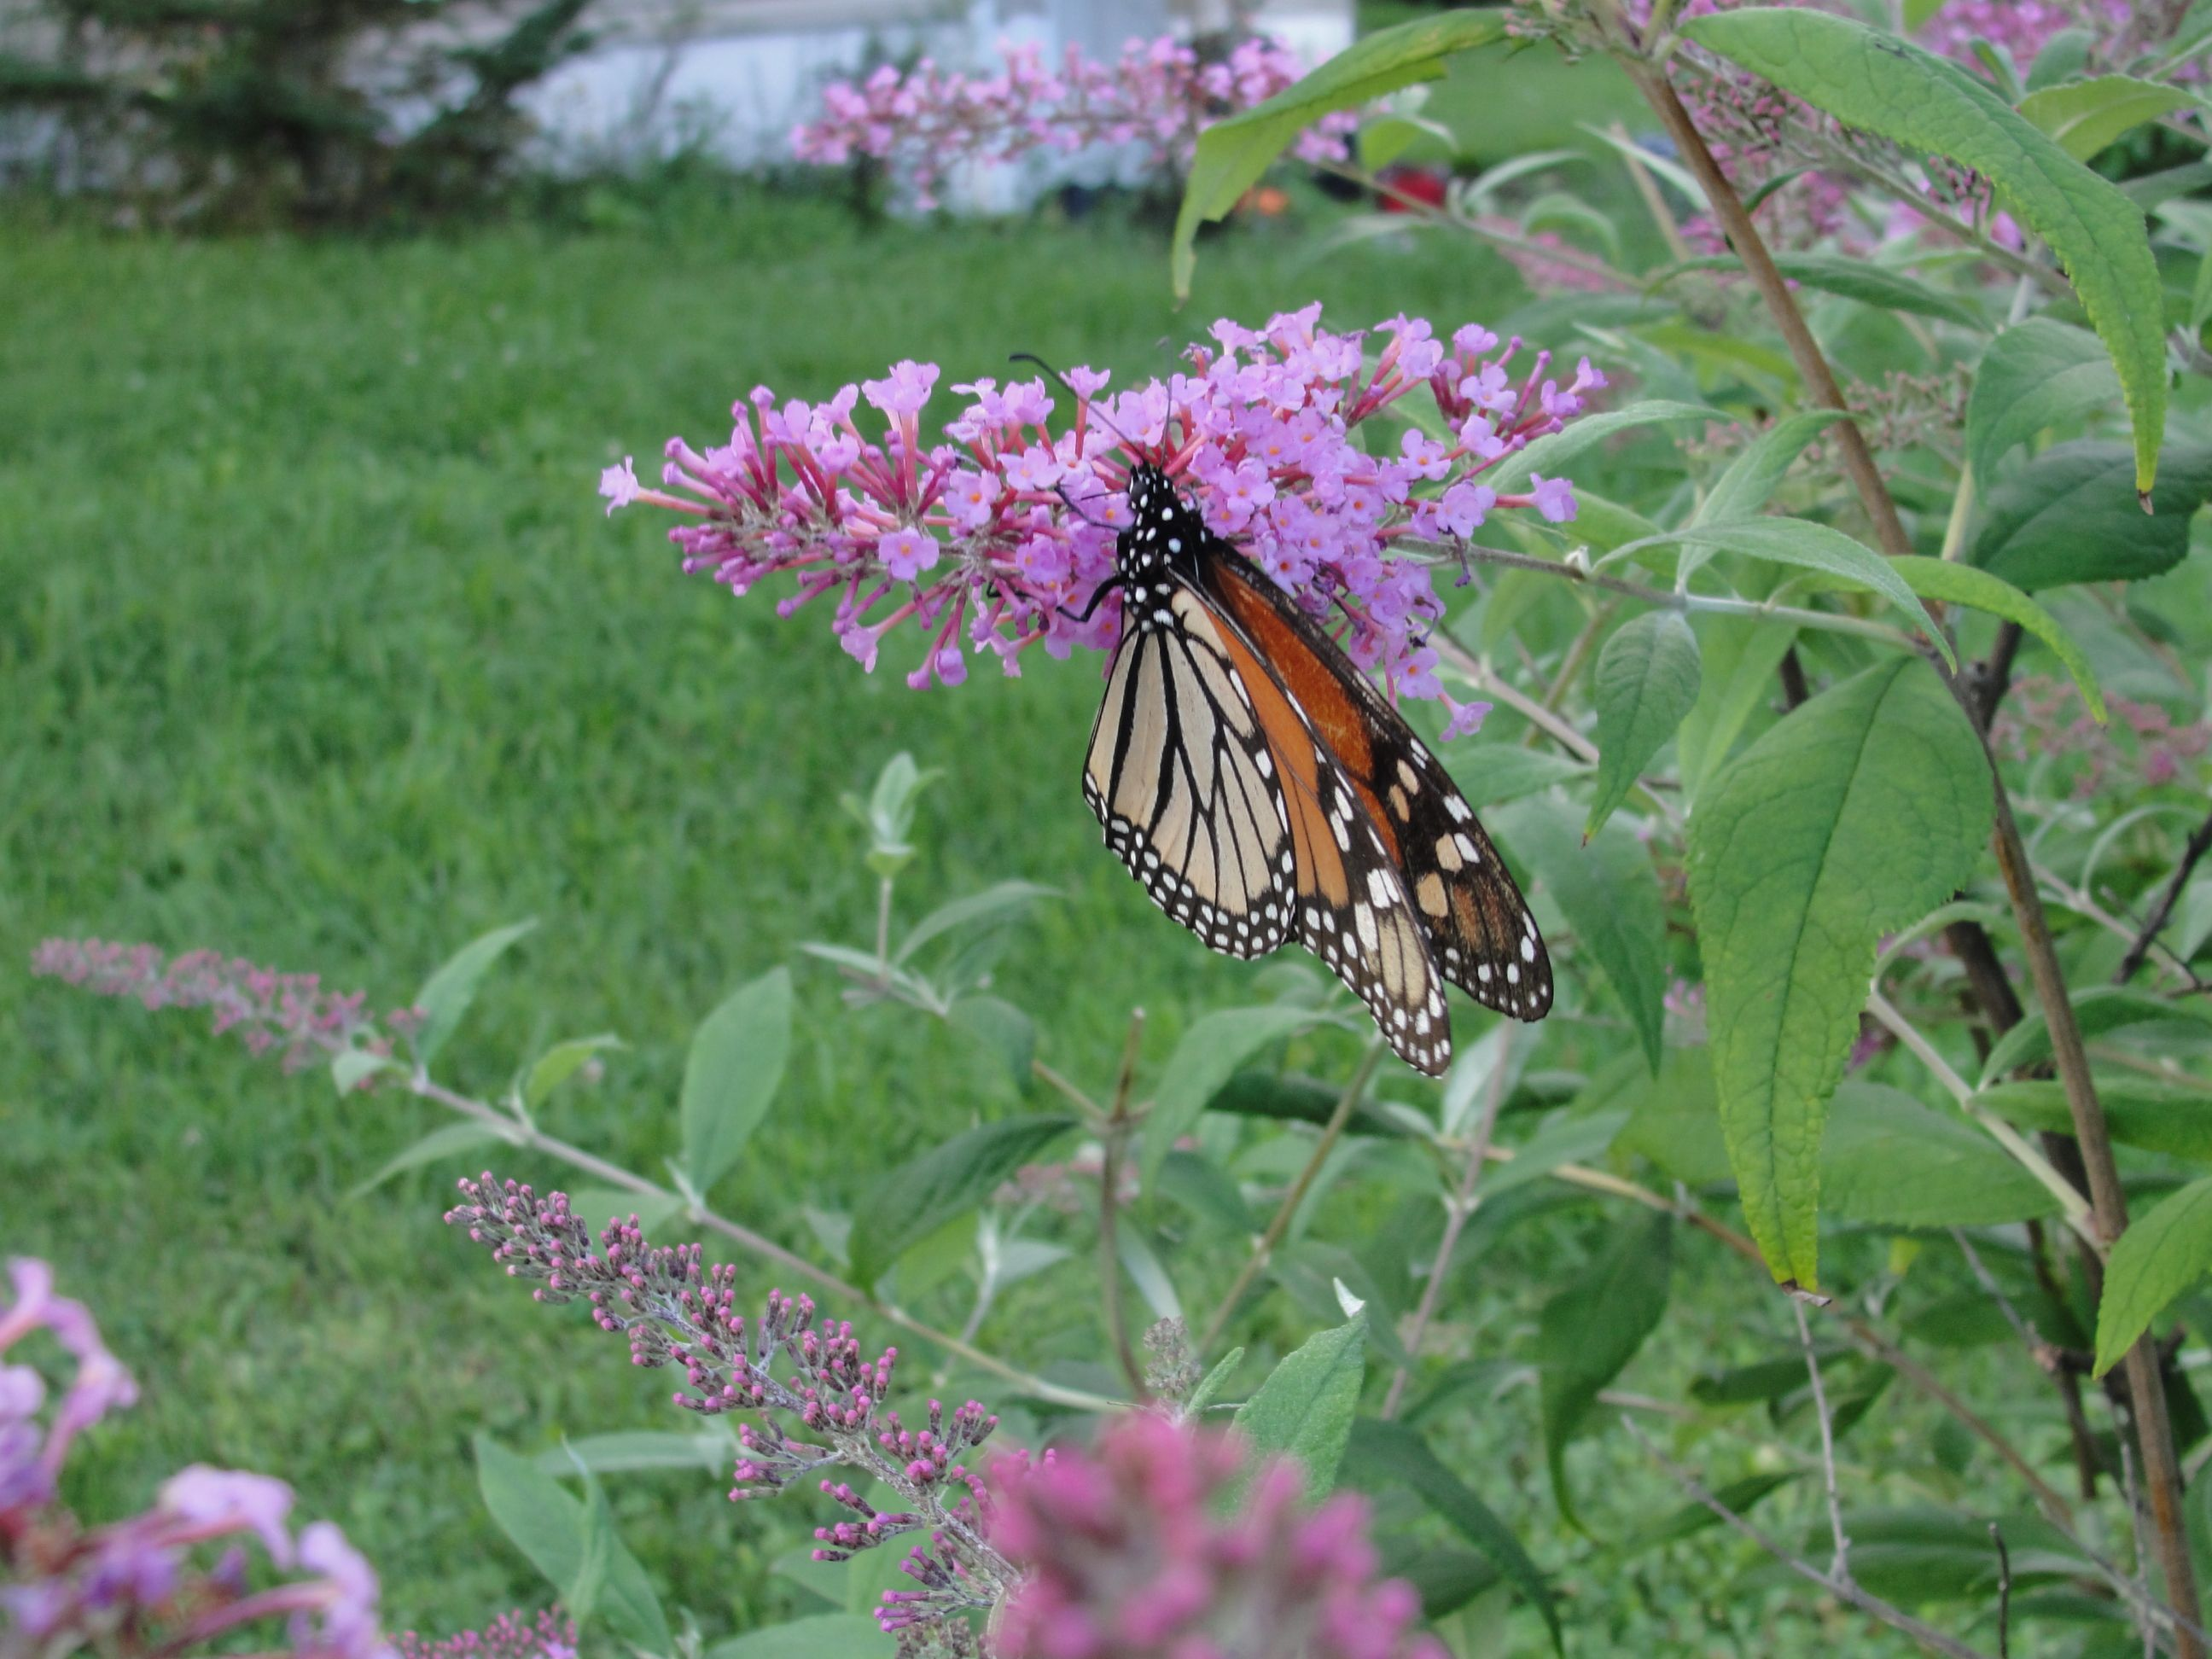 Just a butterfly, beautiful monarch, I found on my bush(: